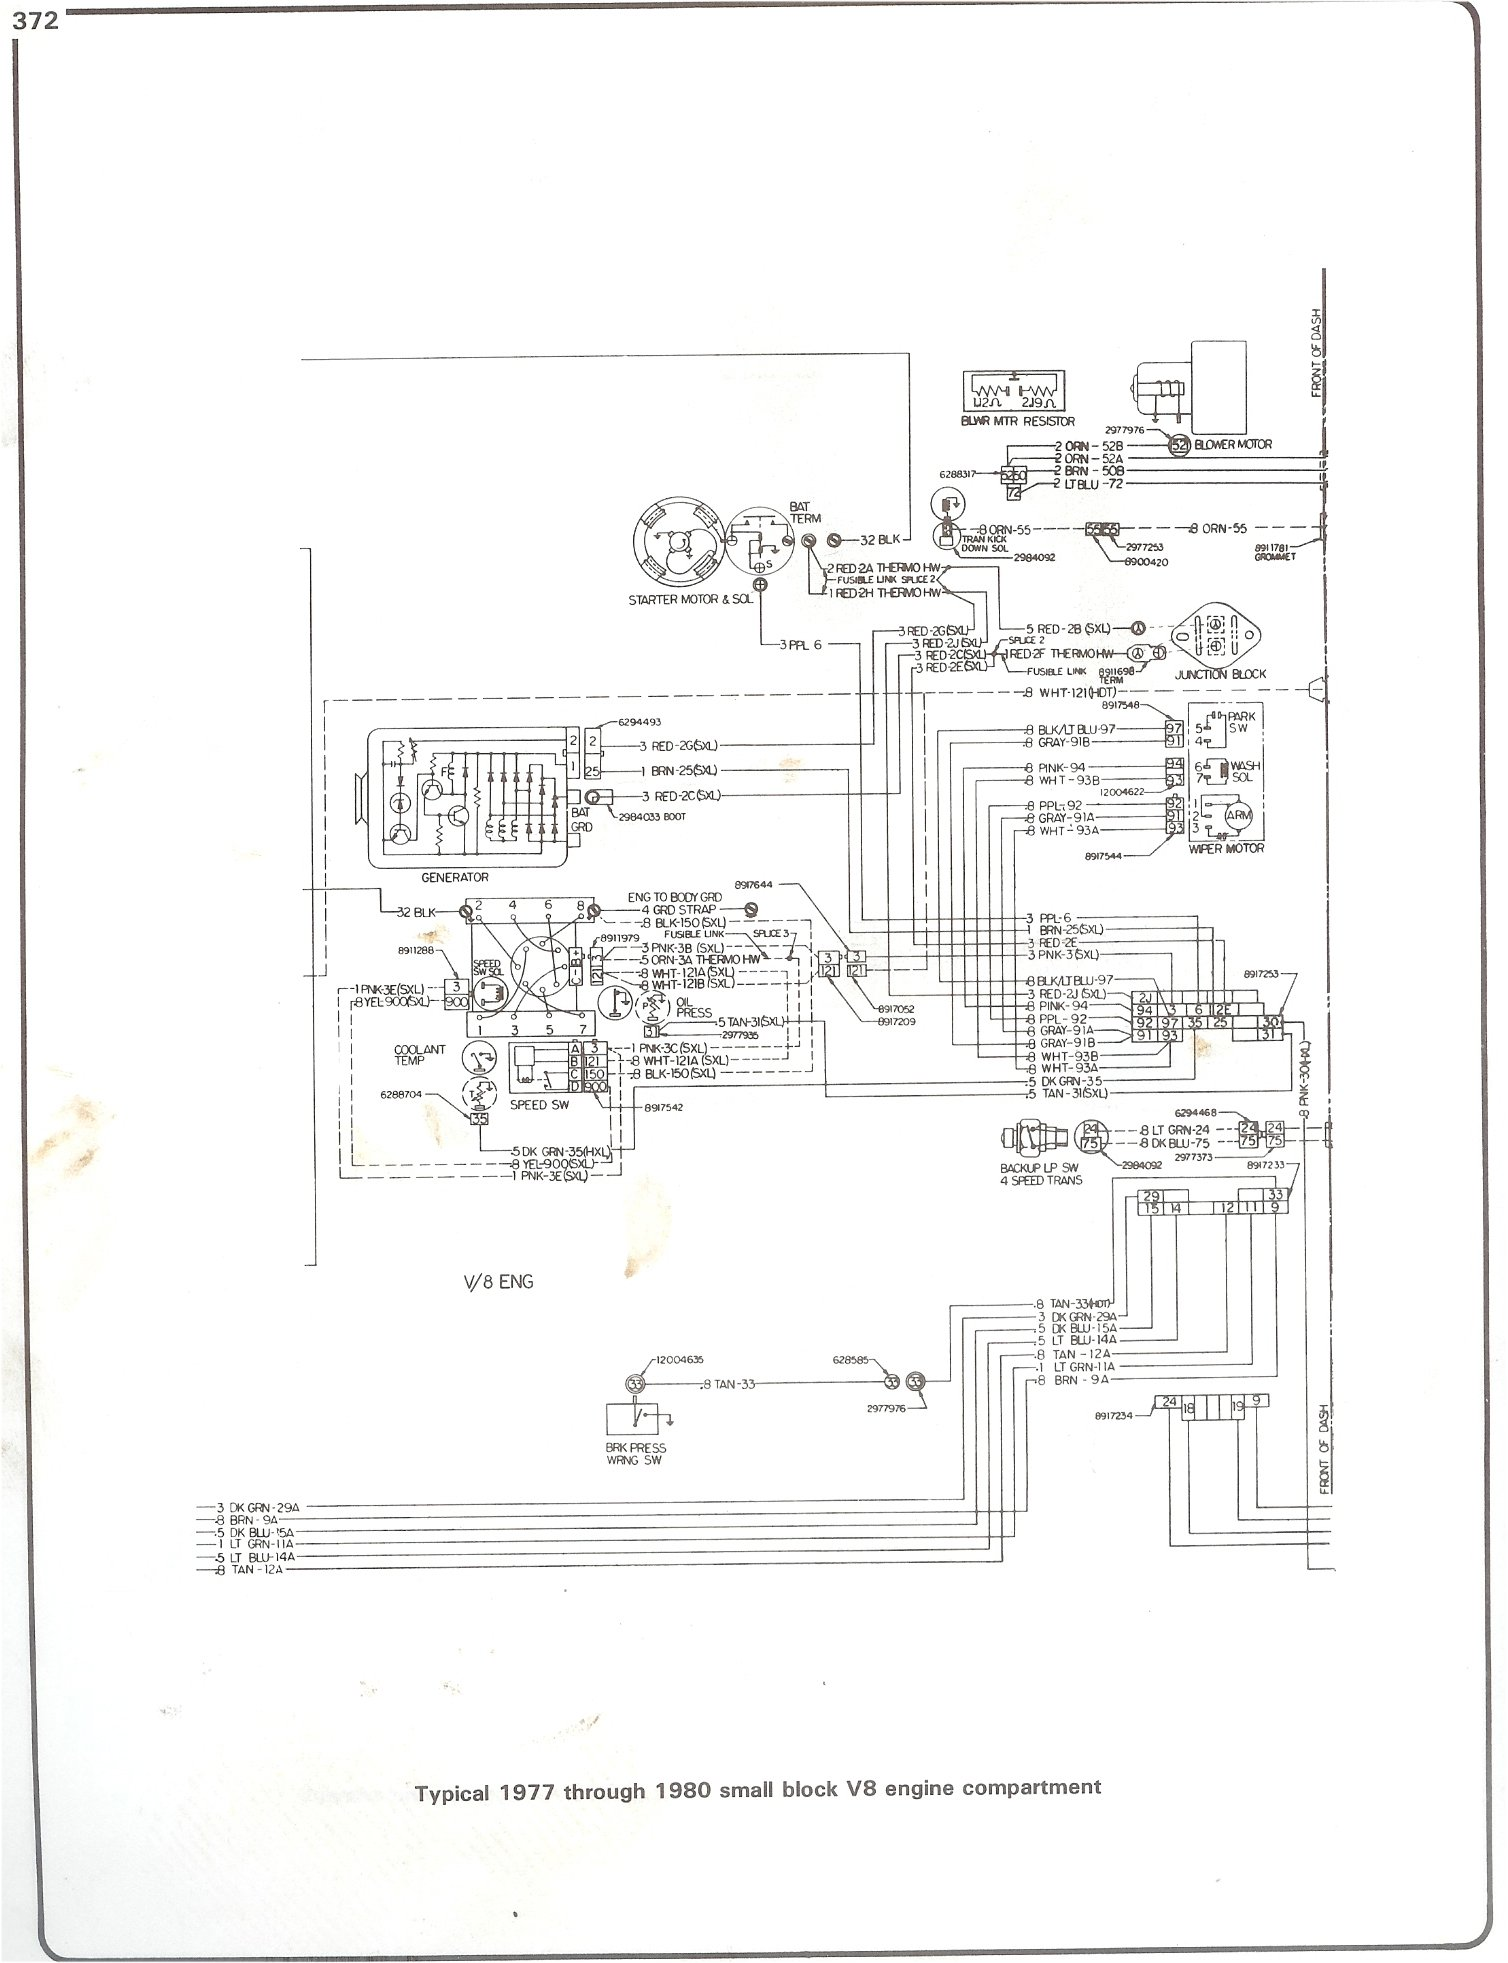 1973 chevy truck electrical schematics wiring diagram